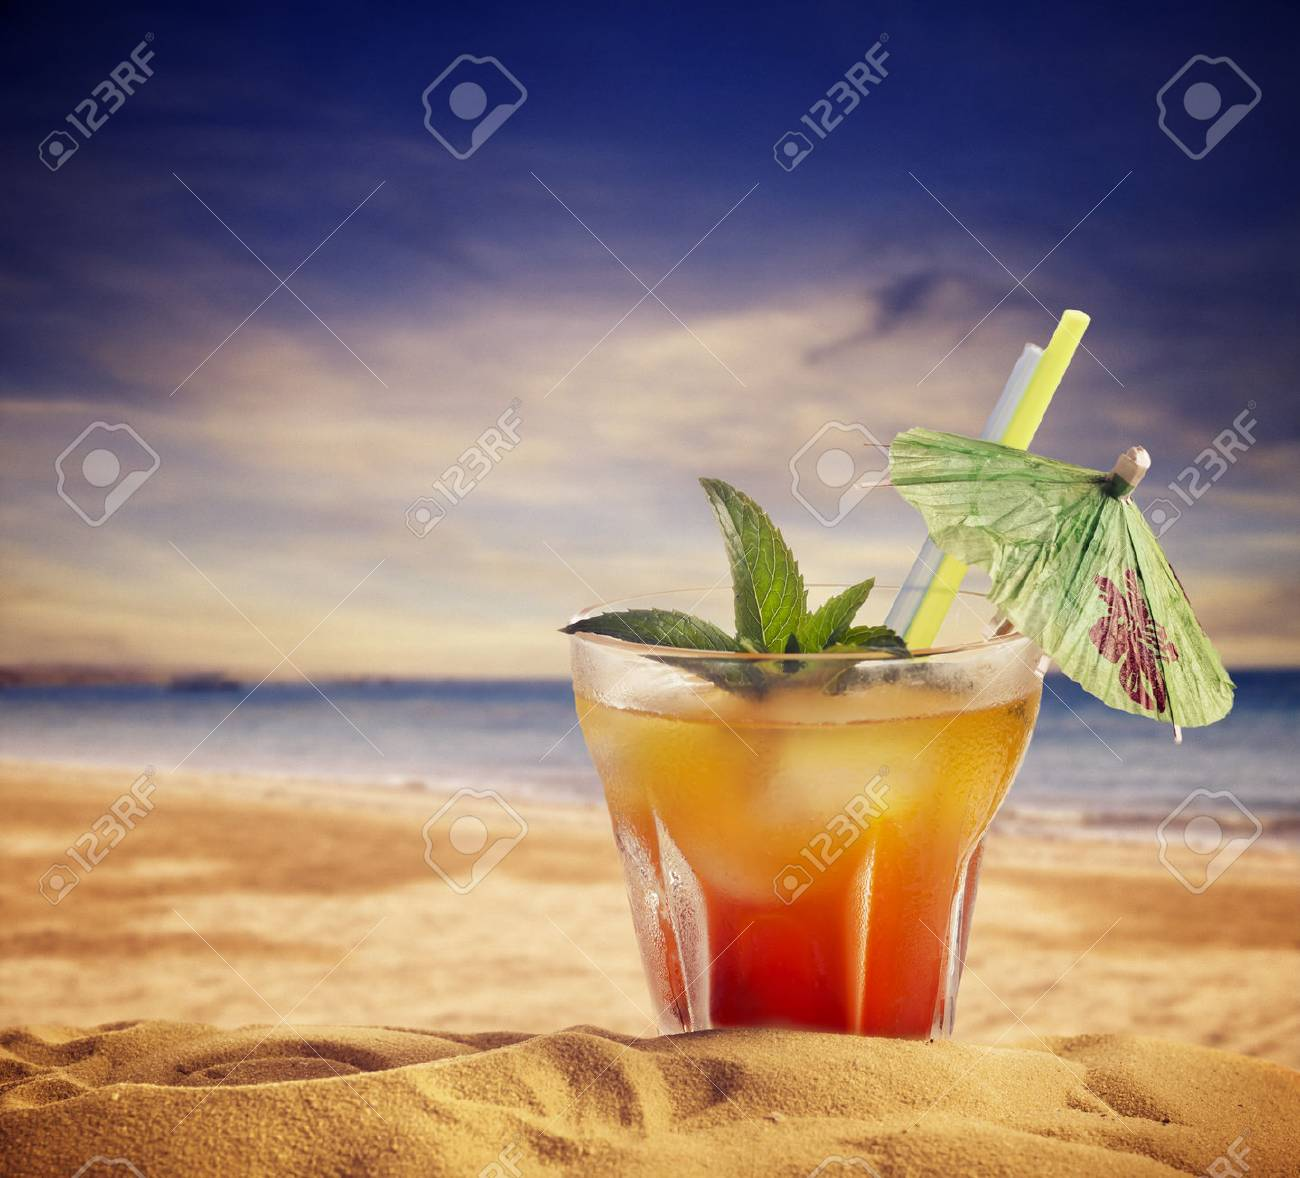 Cocktail and sandy beach. summer concept. - 29384976